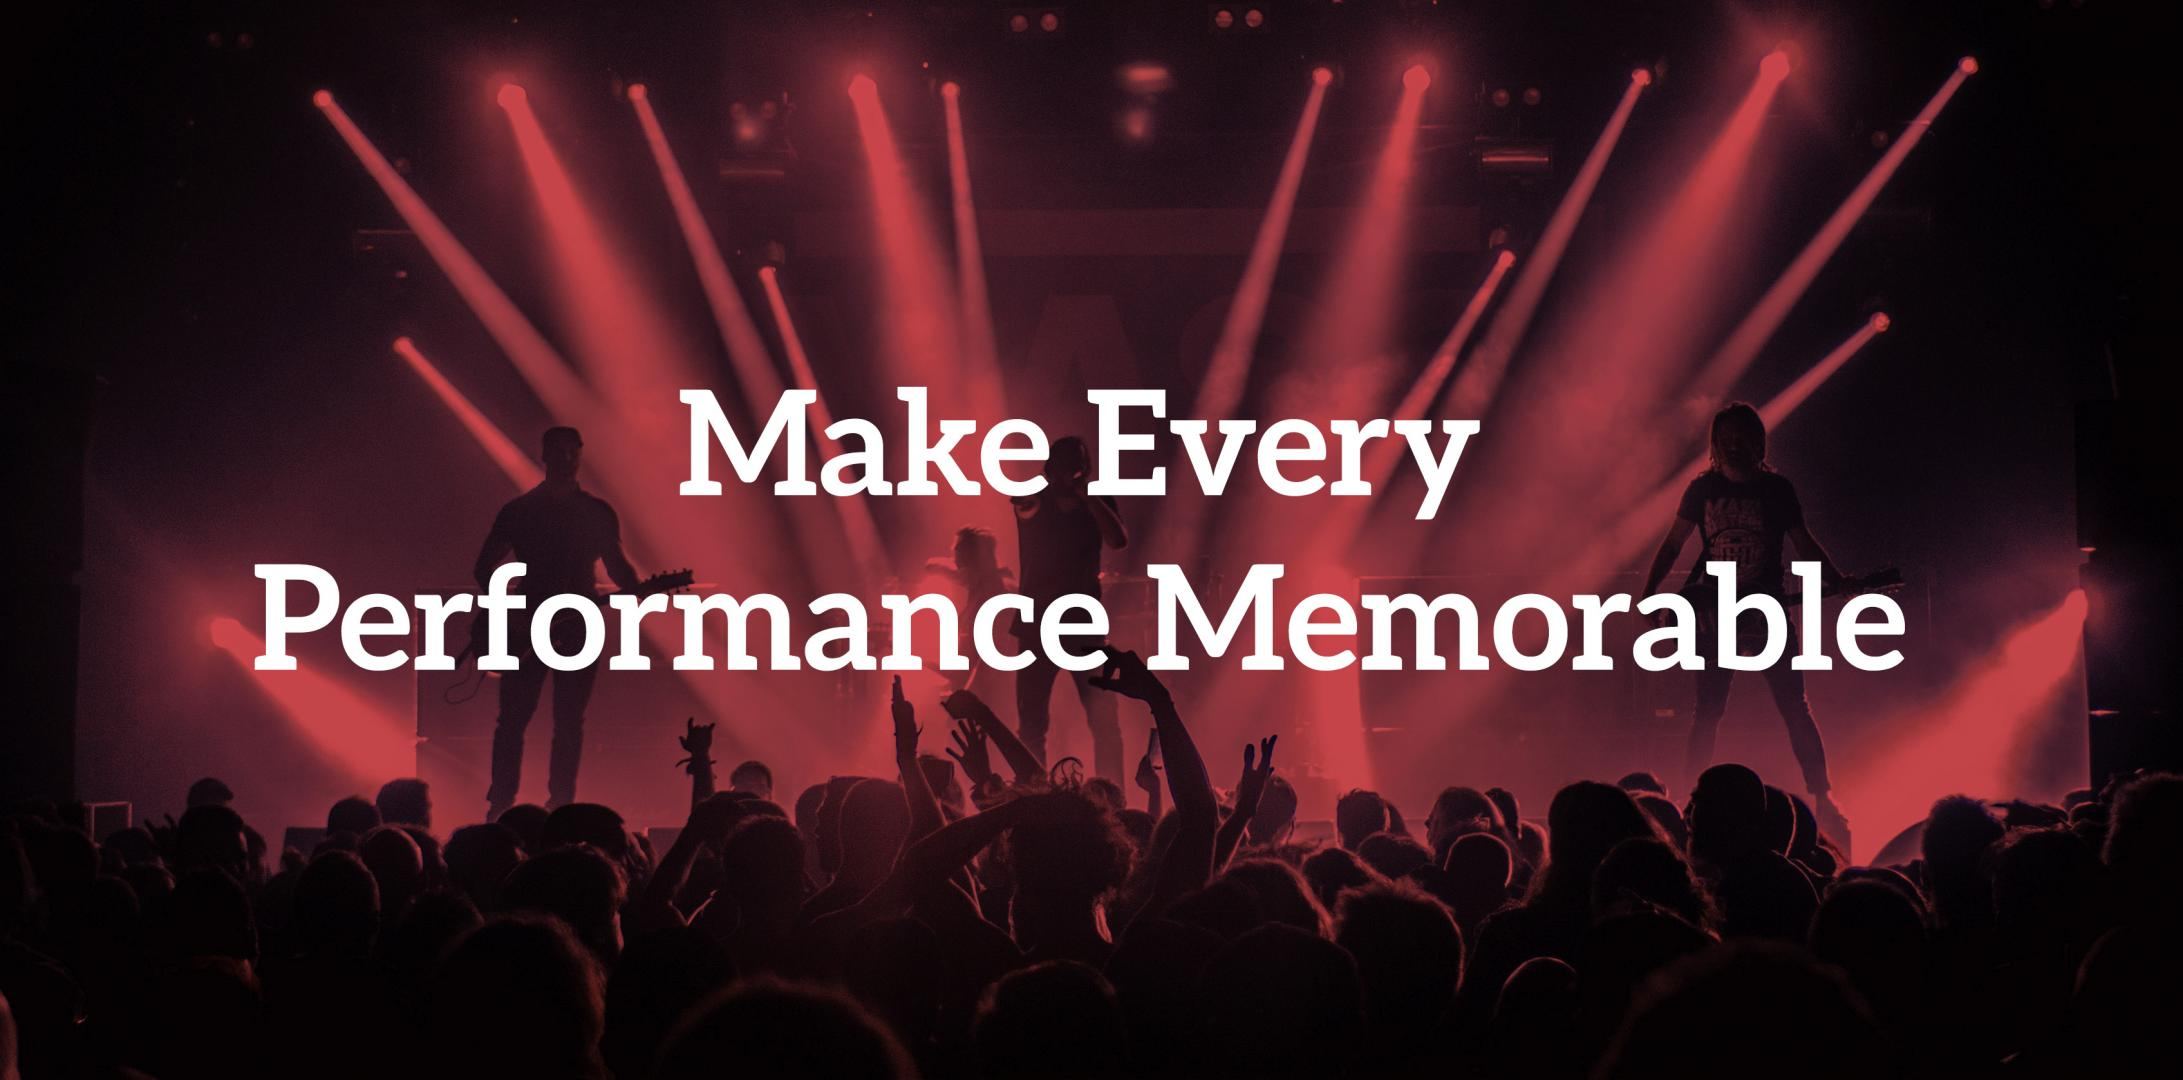 12 Ways: Make Every Performance Memorable